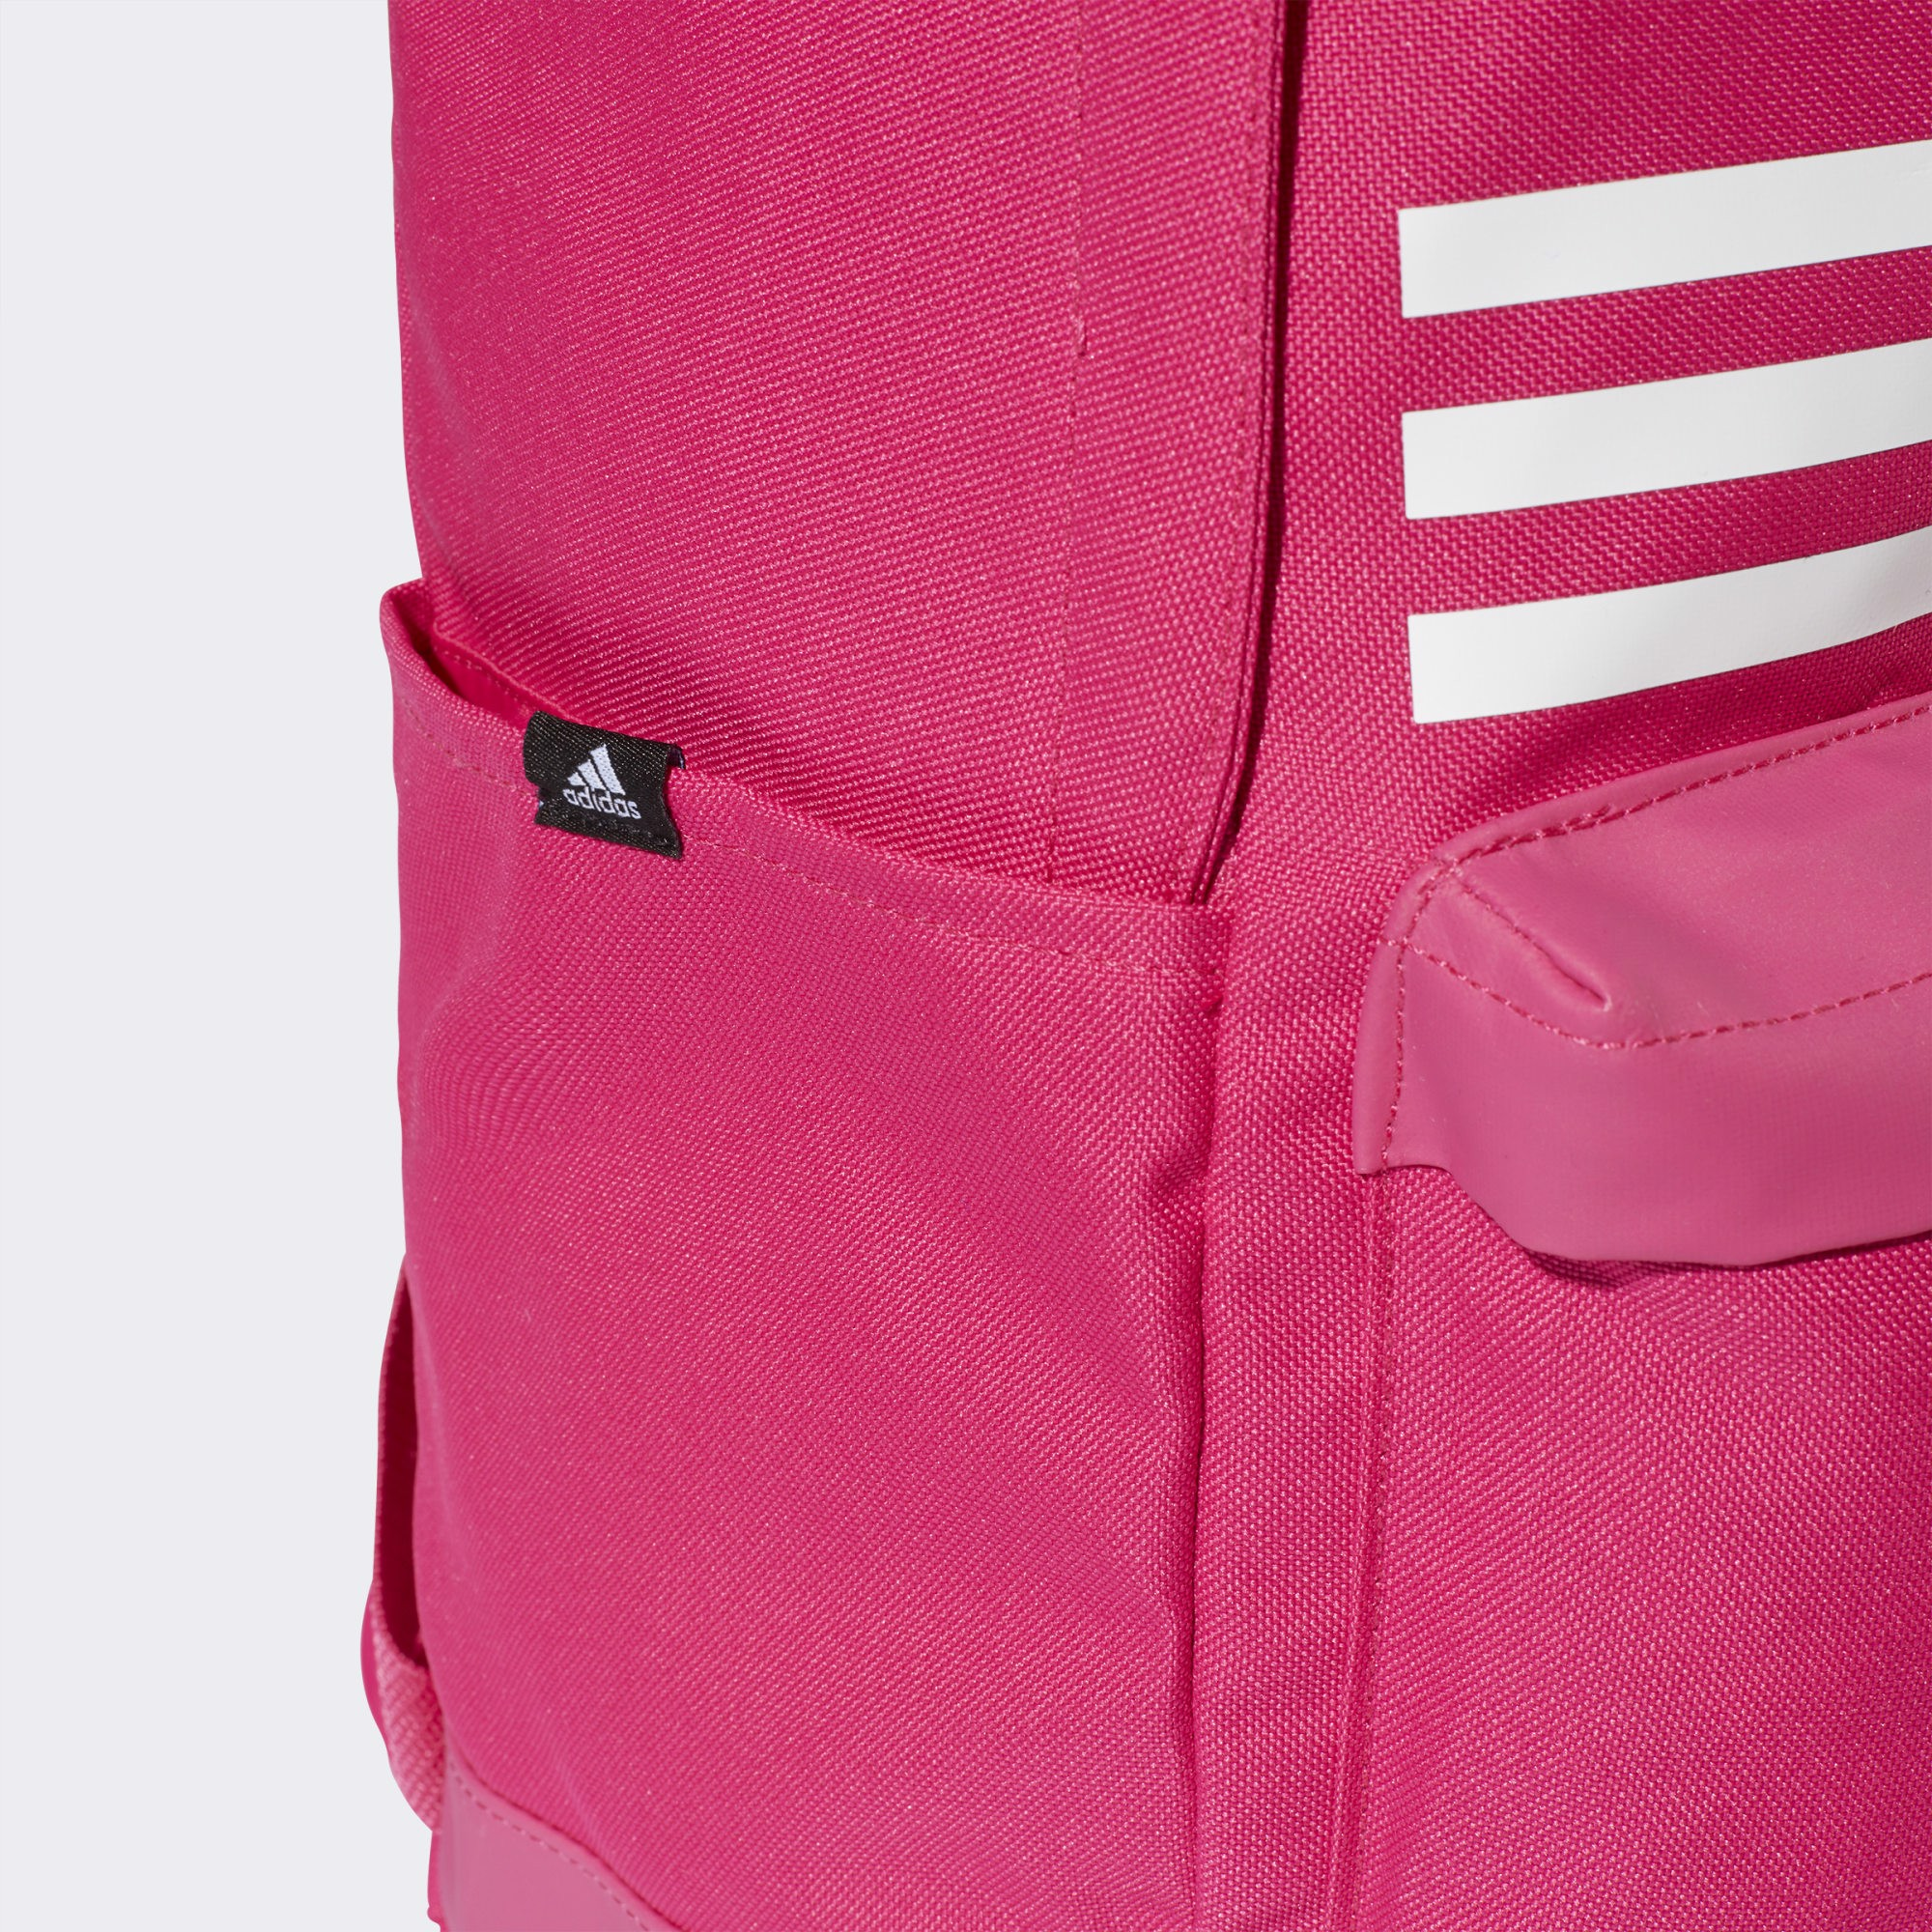 adidas Classic 3-Stripes Pocket Backpack - Magenta